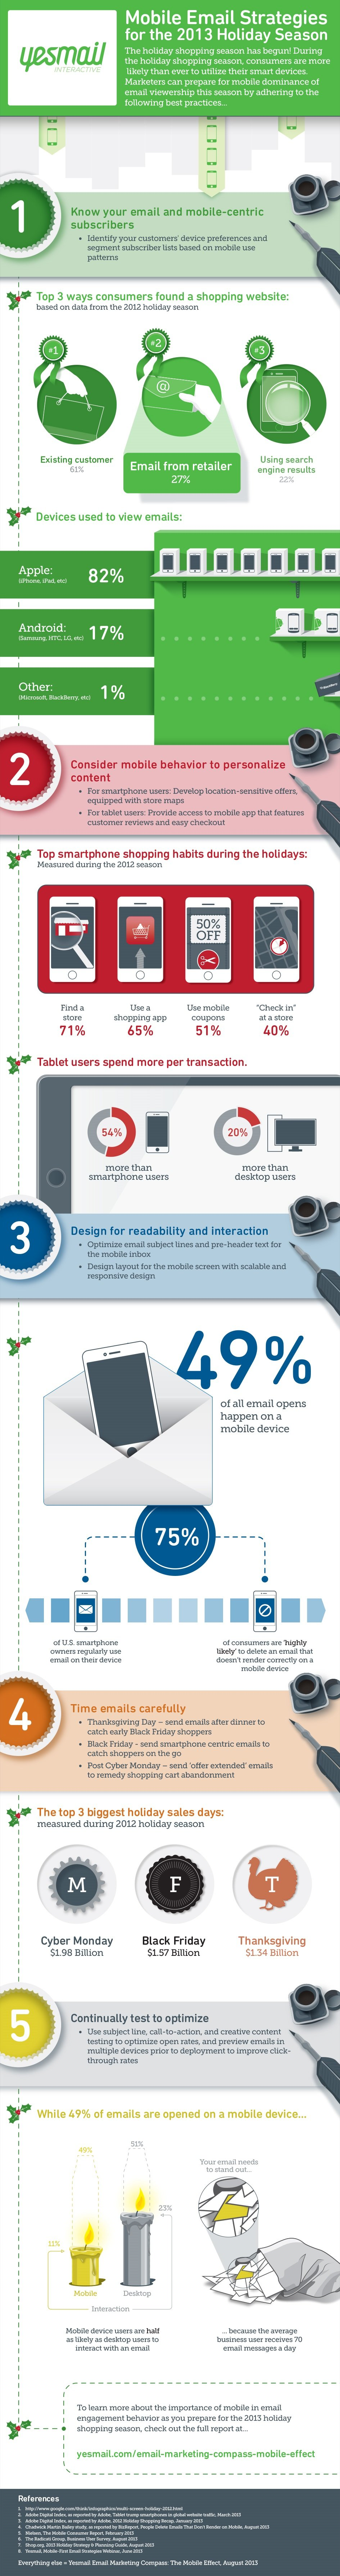 Mobile-Email-Strategies-for-the-2013-Holiday-Season-infographic